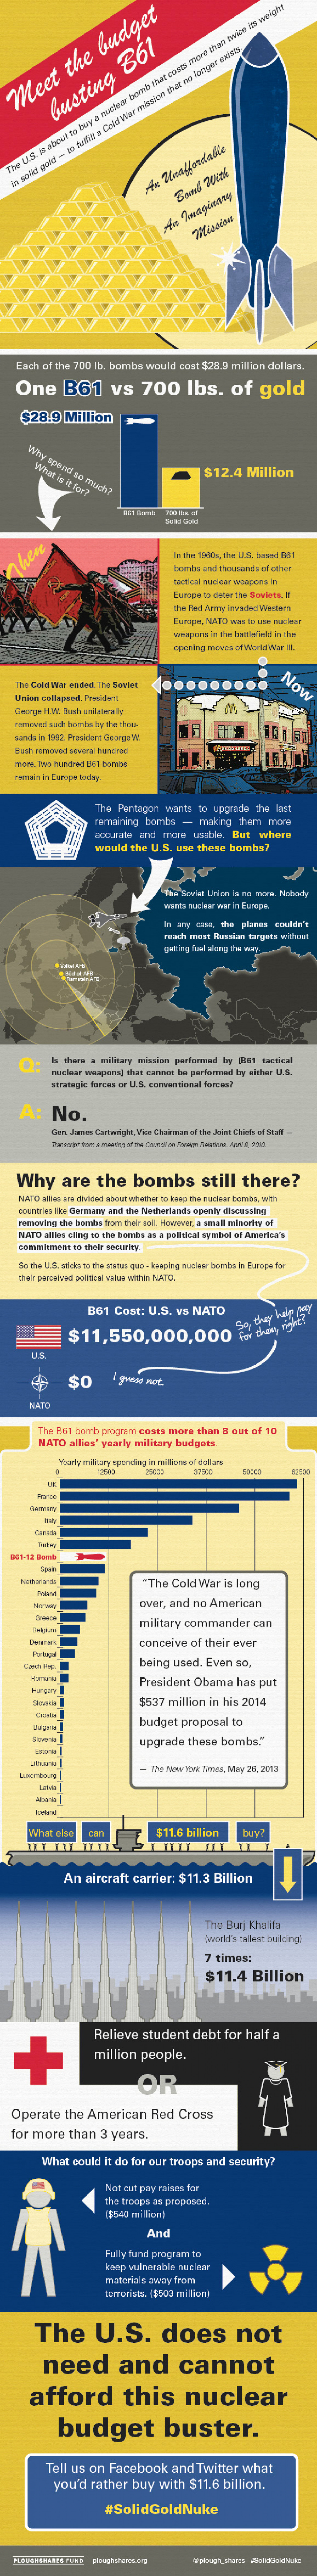 Meet the budget busting B61 Infographic